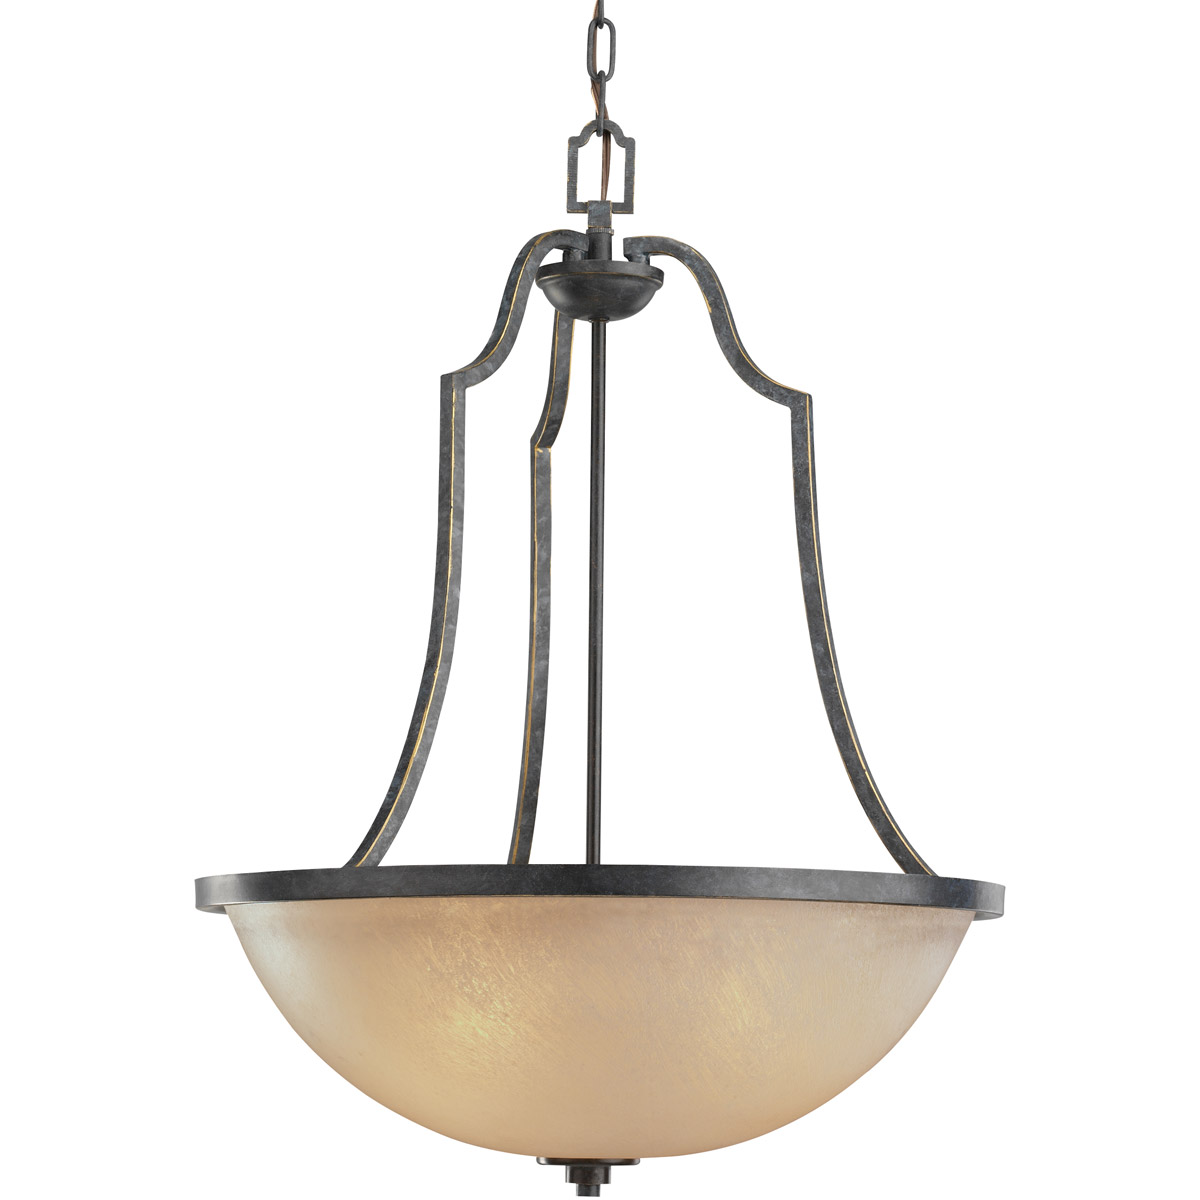 Sea Gull 65521-845 Roslyn 3 Light 21 inch Flemish Bronze Chandelier Ceiling Light in Standard photo